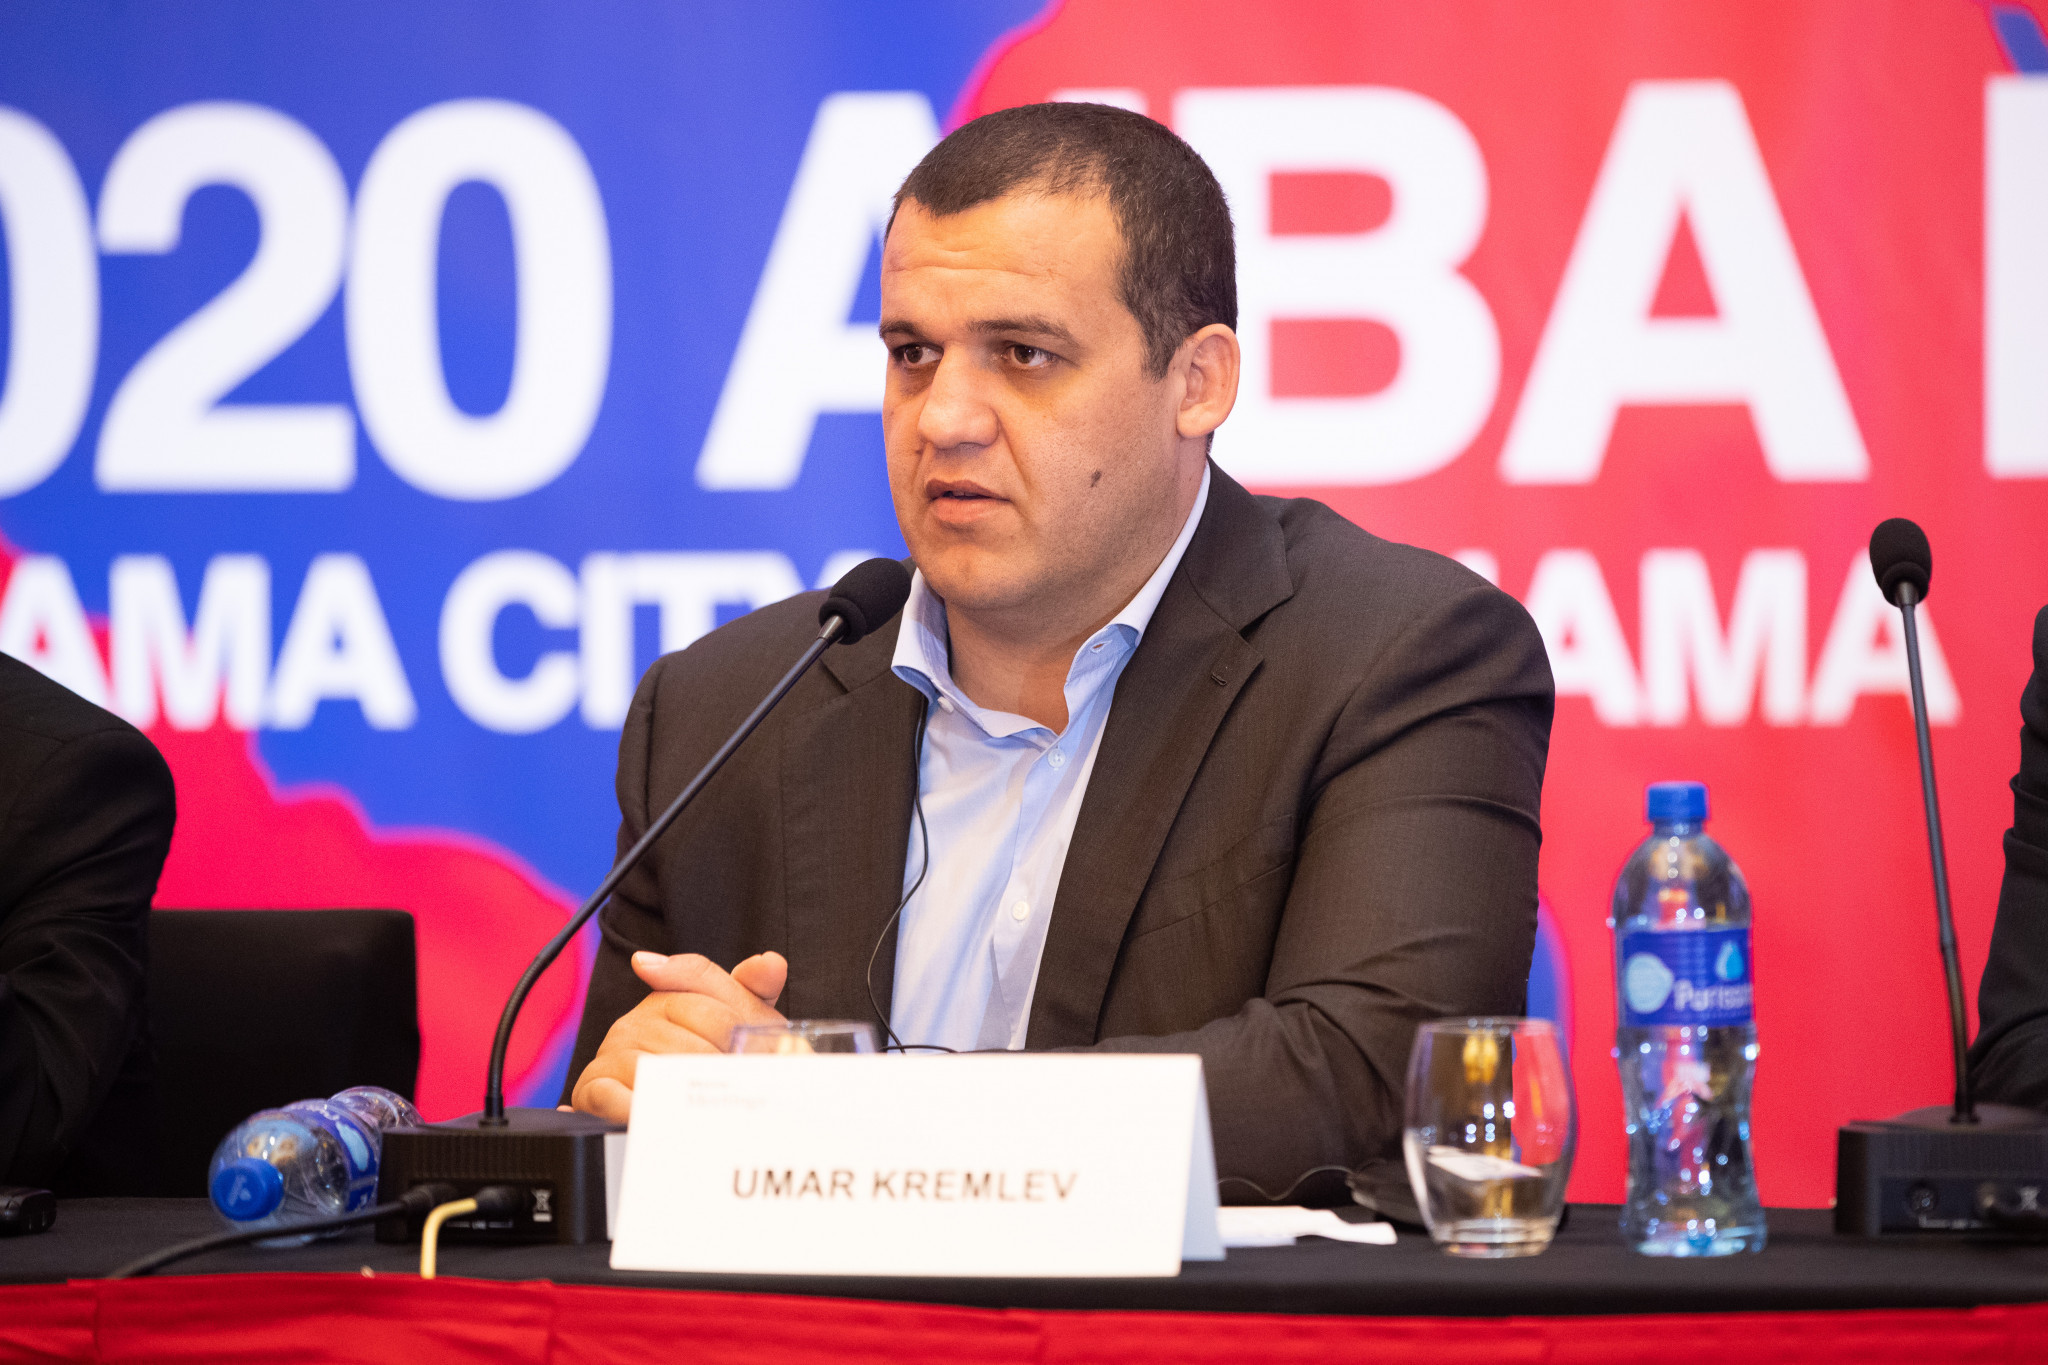 Umar Kremlev is now head of the AIBA Marketing Commission ©AIBA